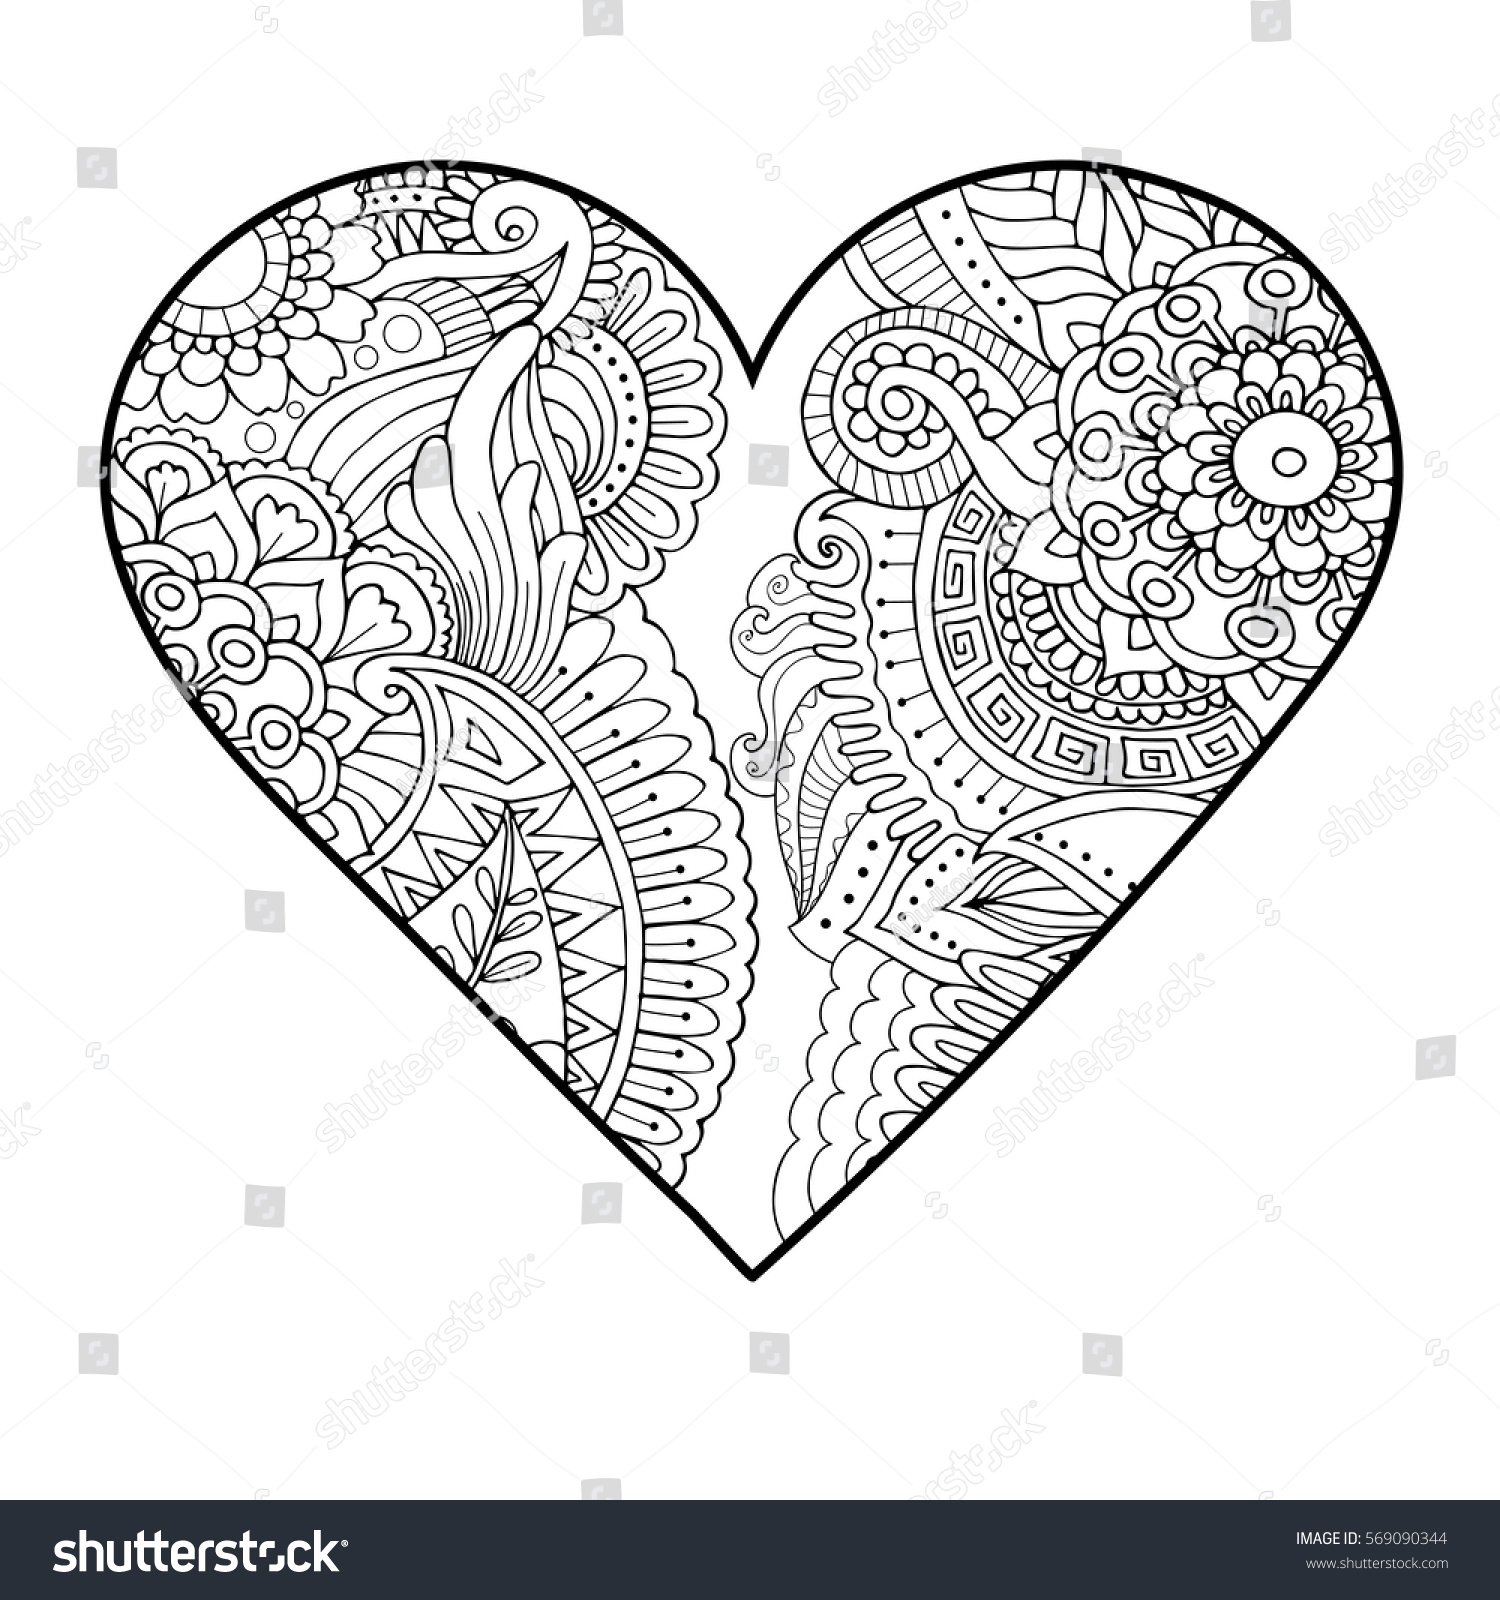 Adult Coloring Book Style Zentangle Floral Heart Passion Symbol Valentines Day Decor